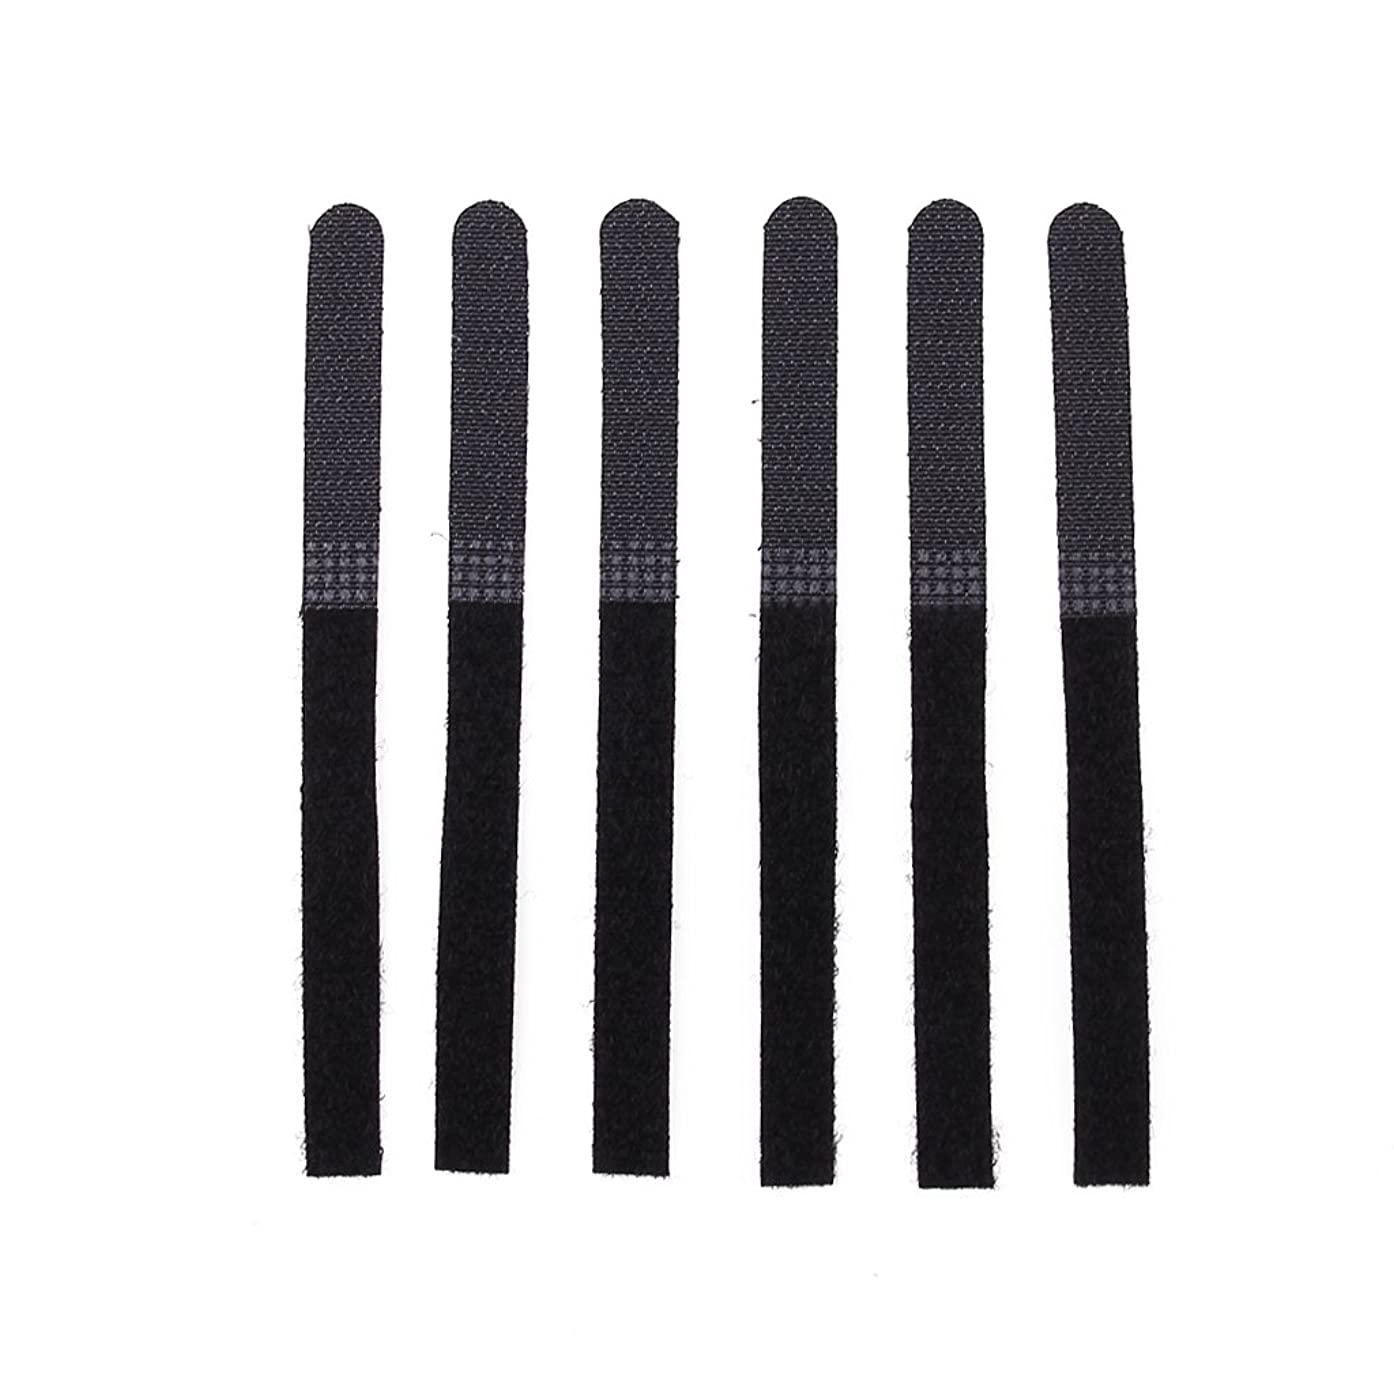 Flameer 50pcs Cable Winder Wire Organizer Cable Earphone Holder Cord Protector Tape